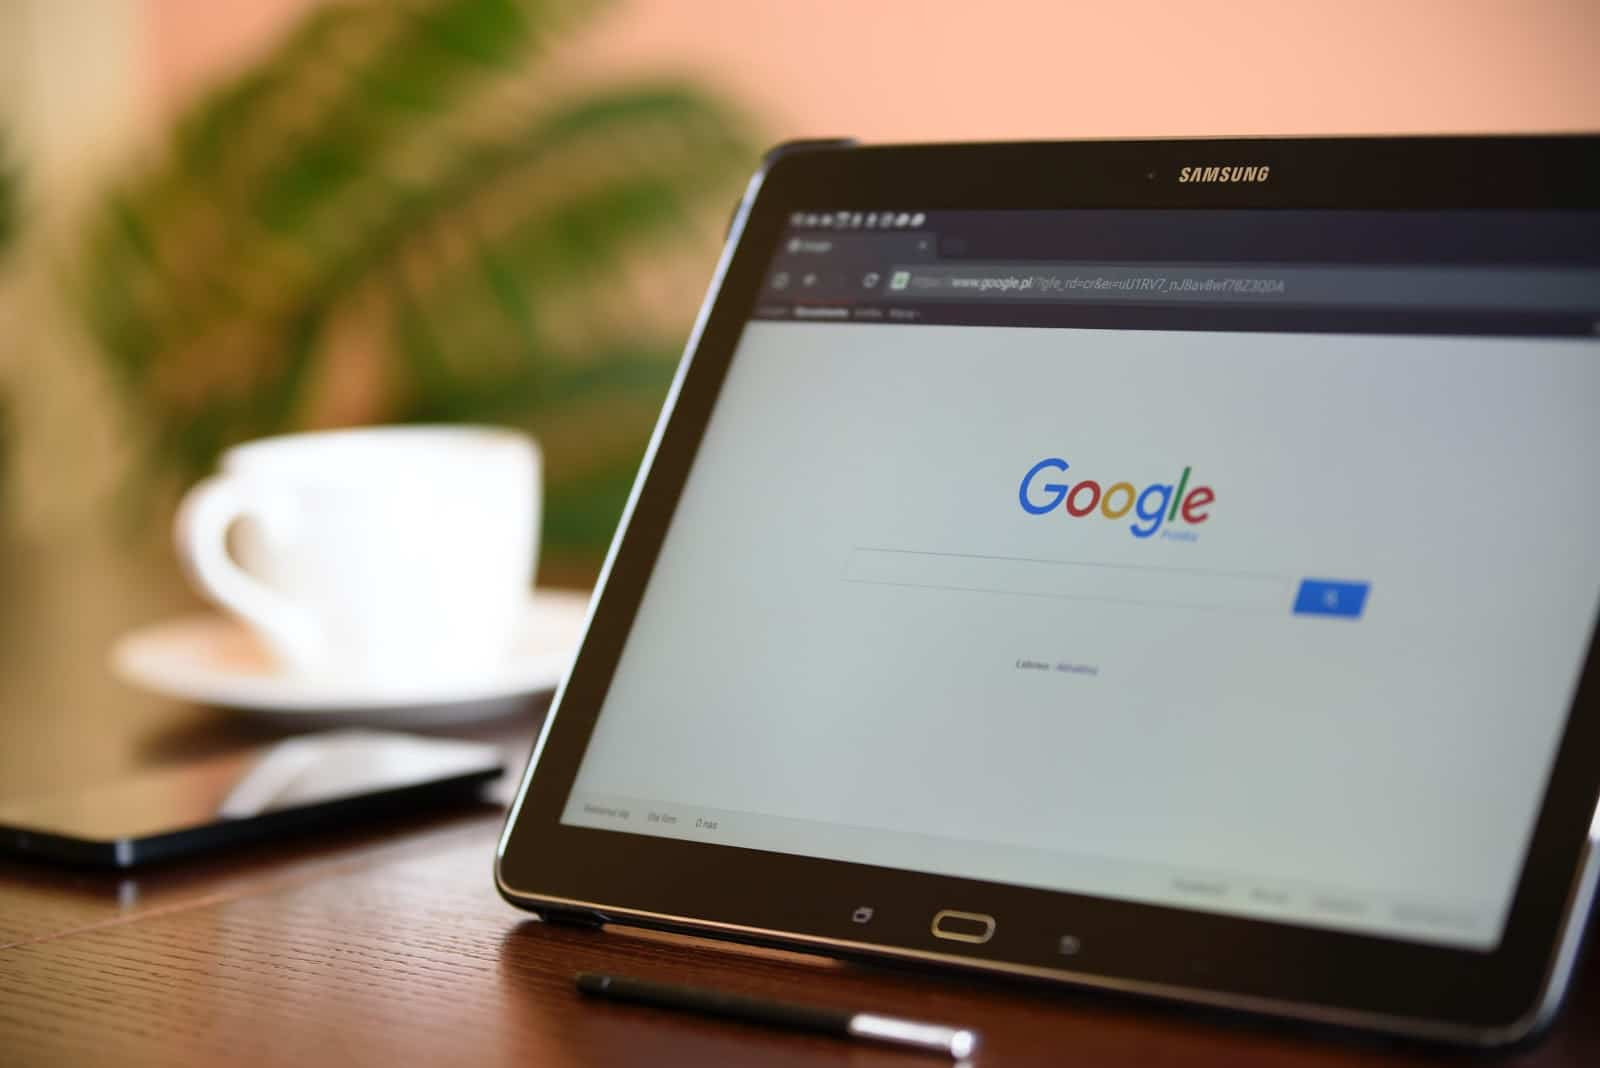 picture of google pulled up on ipad beside coffee mug